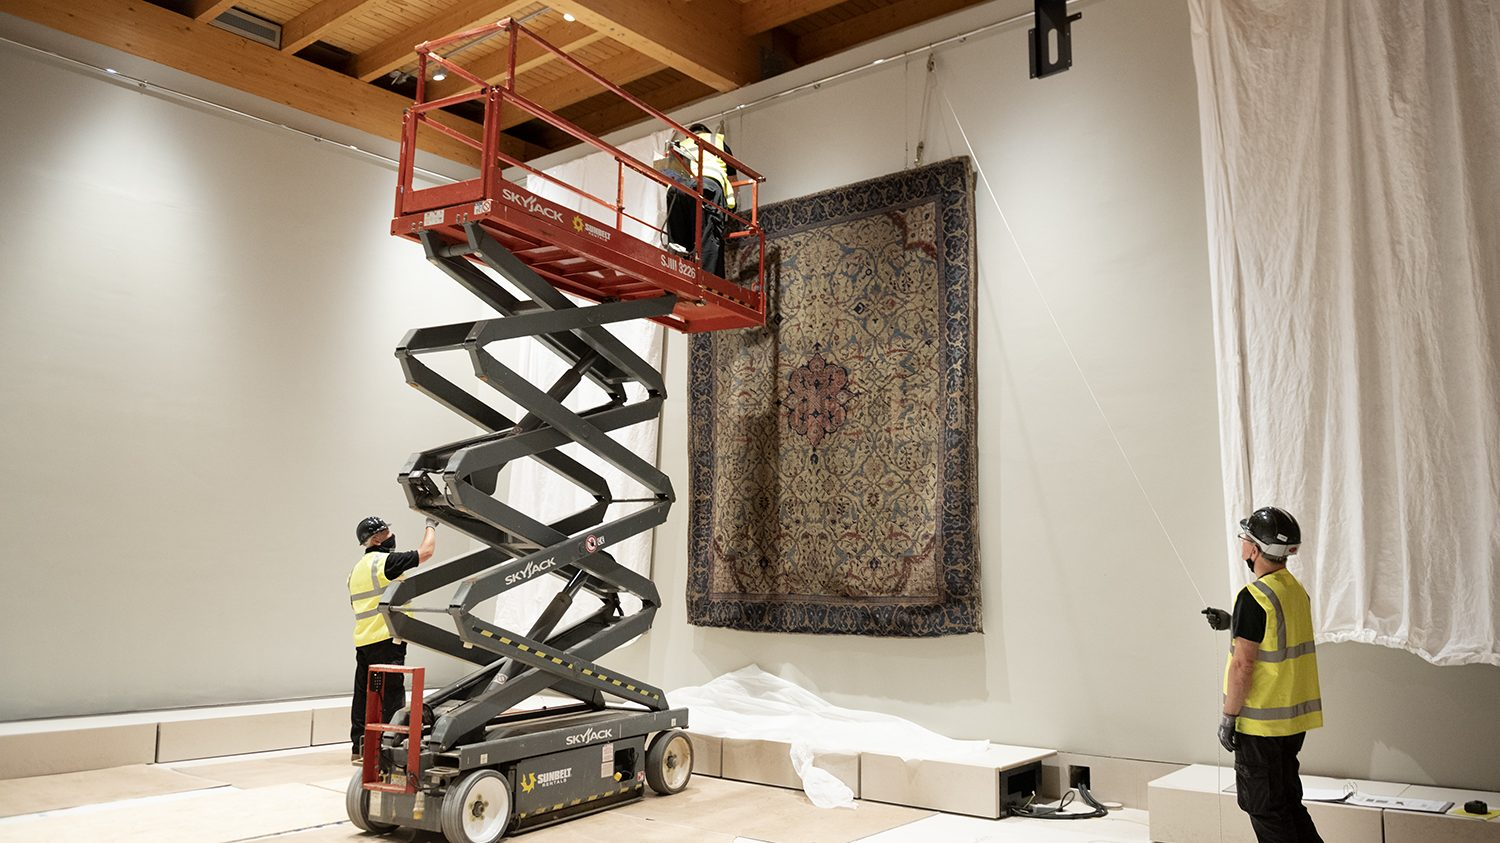 The Burrell Collection's Arabesque carpet being installed